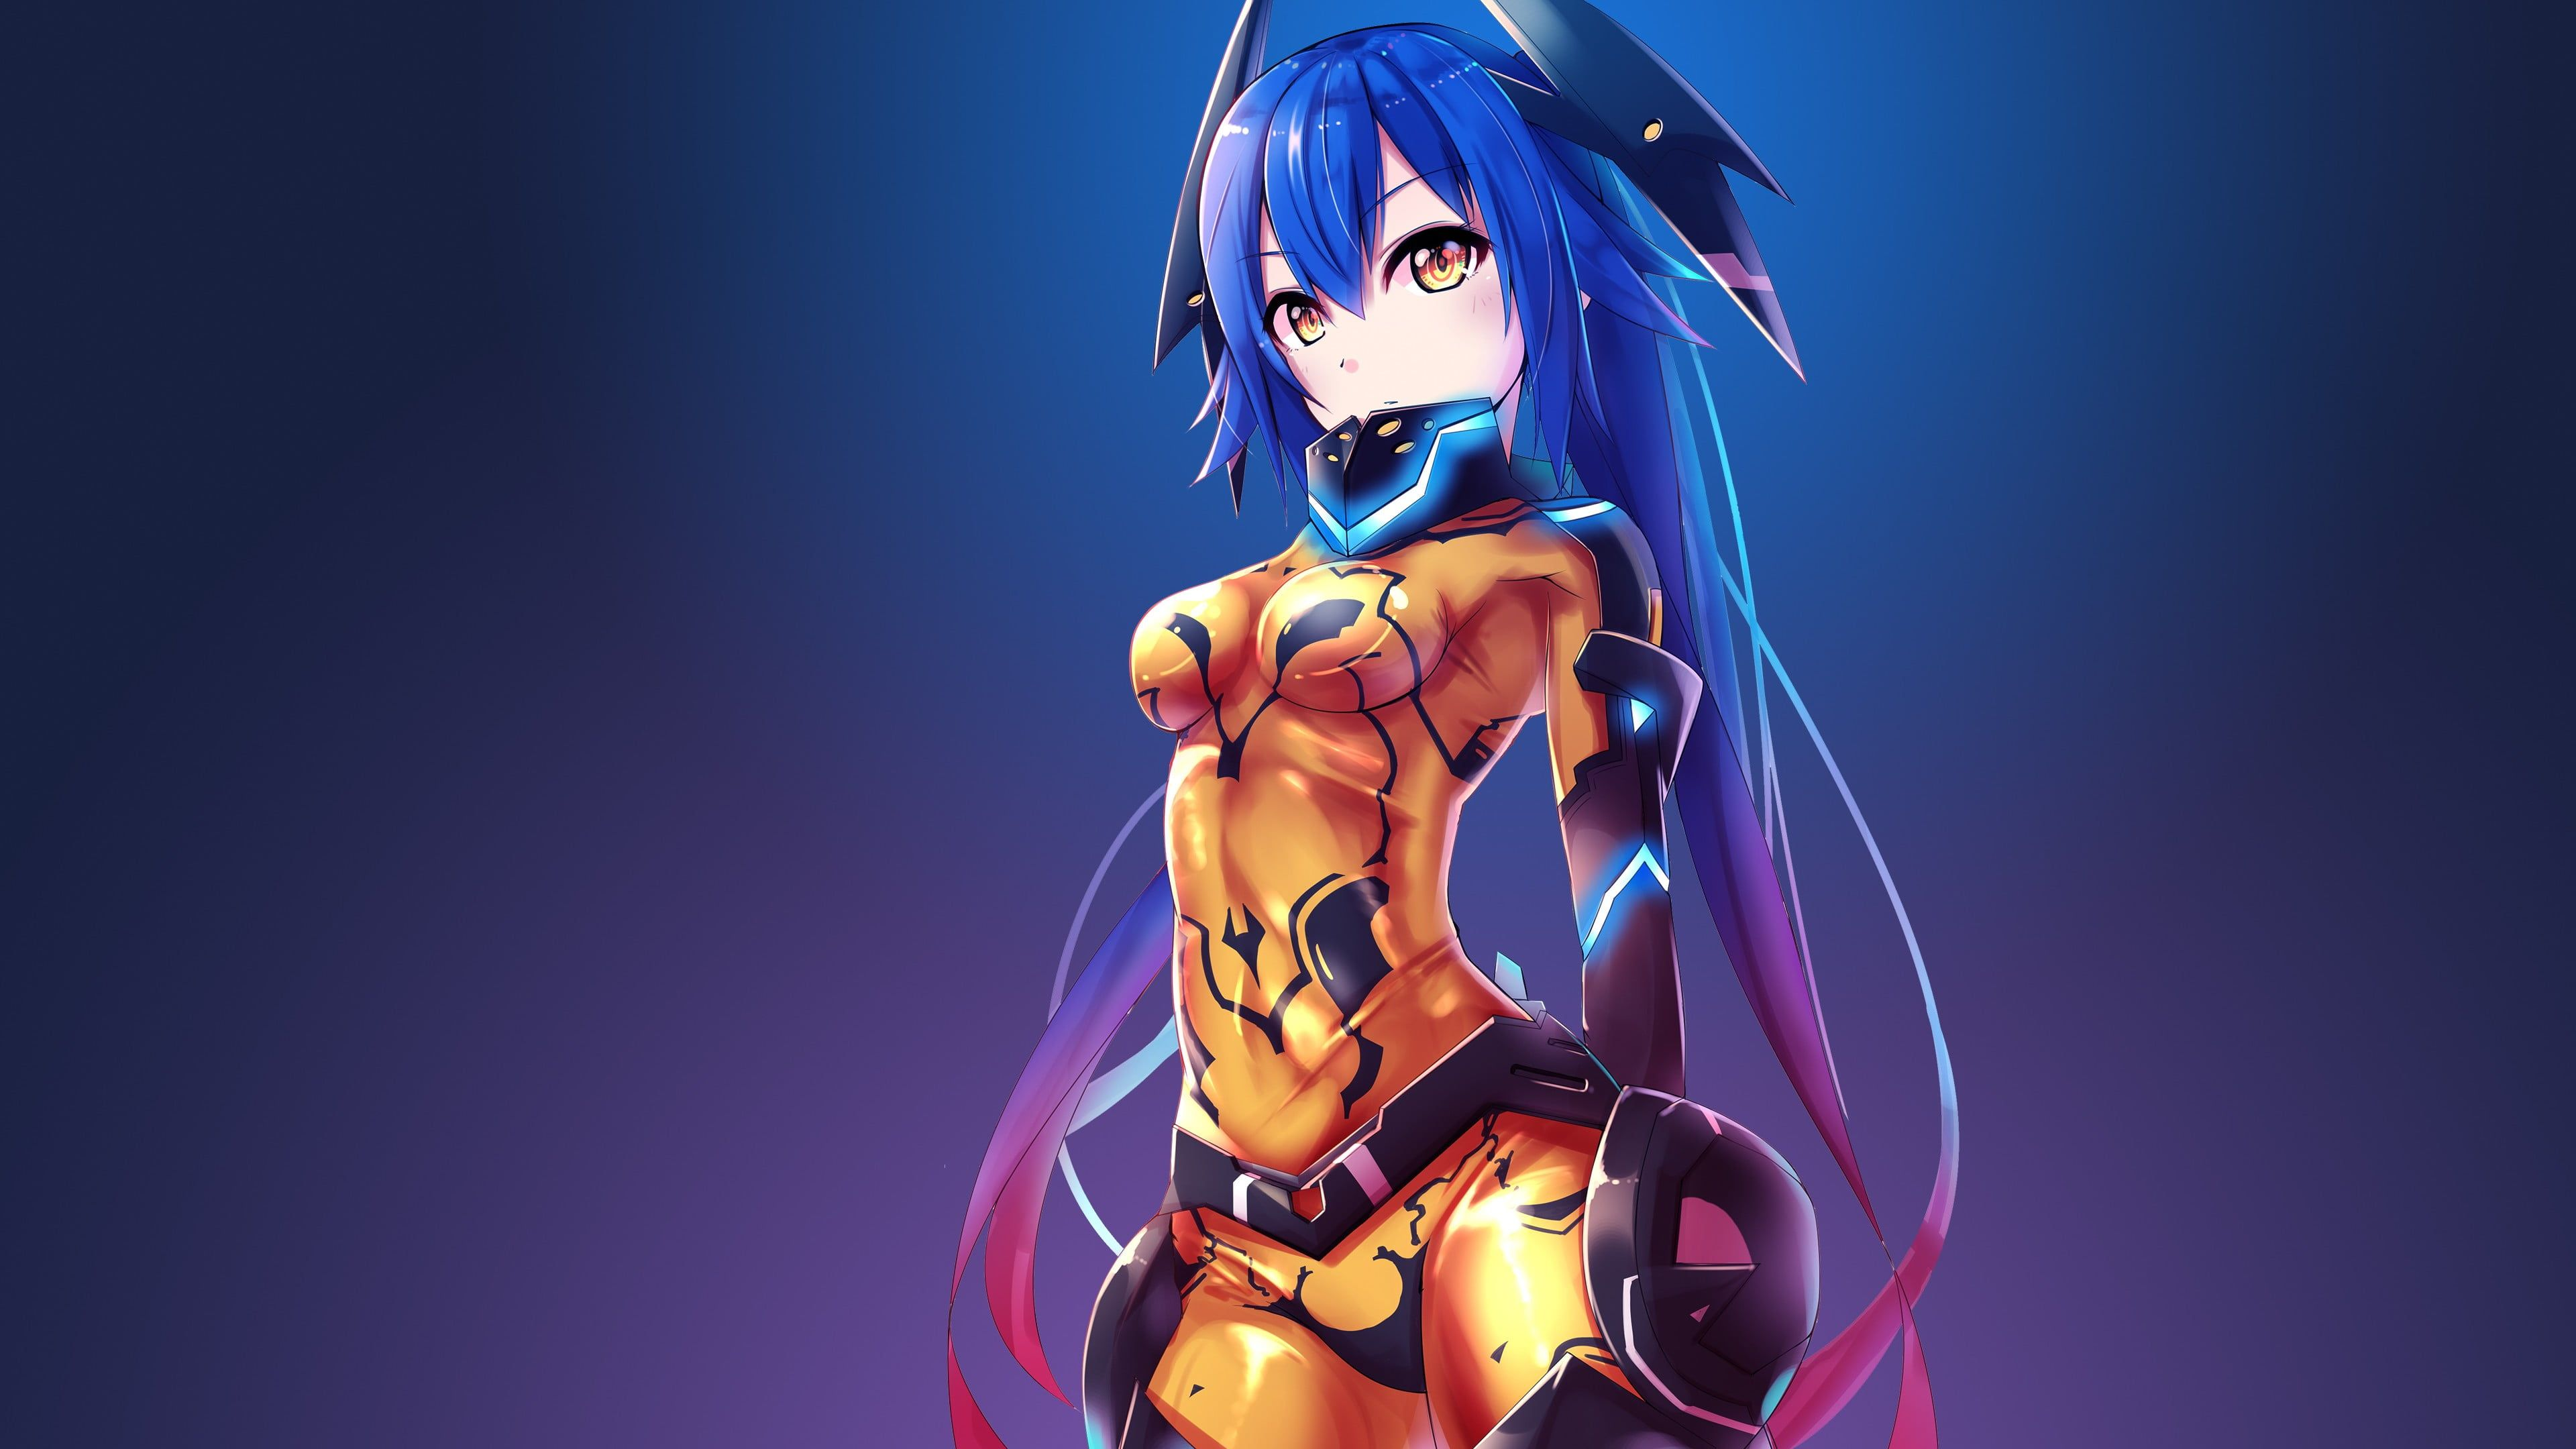 Blue Haired Female Anime Character Illustration Anime Anime Girls